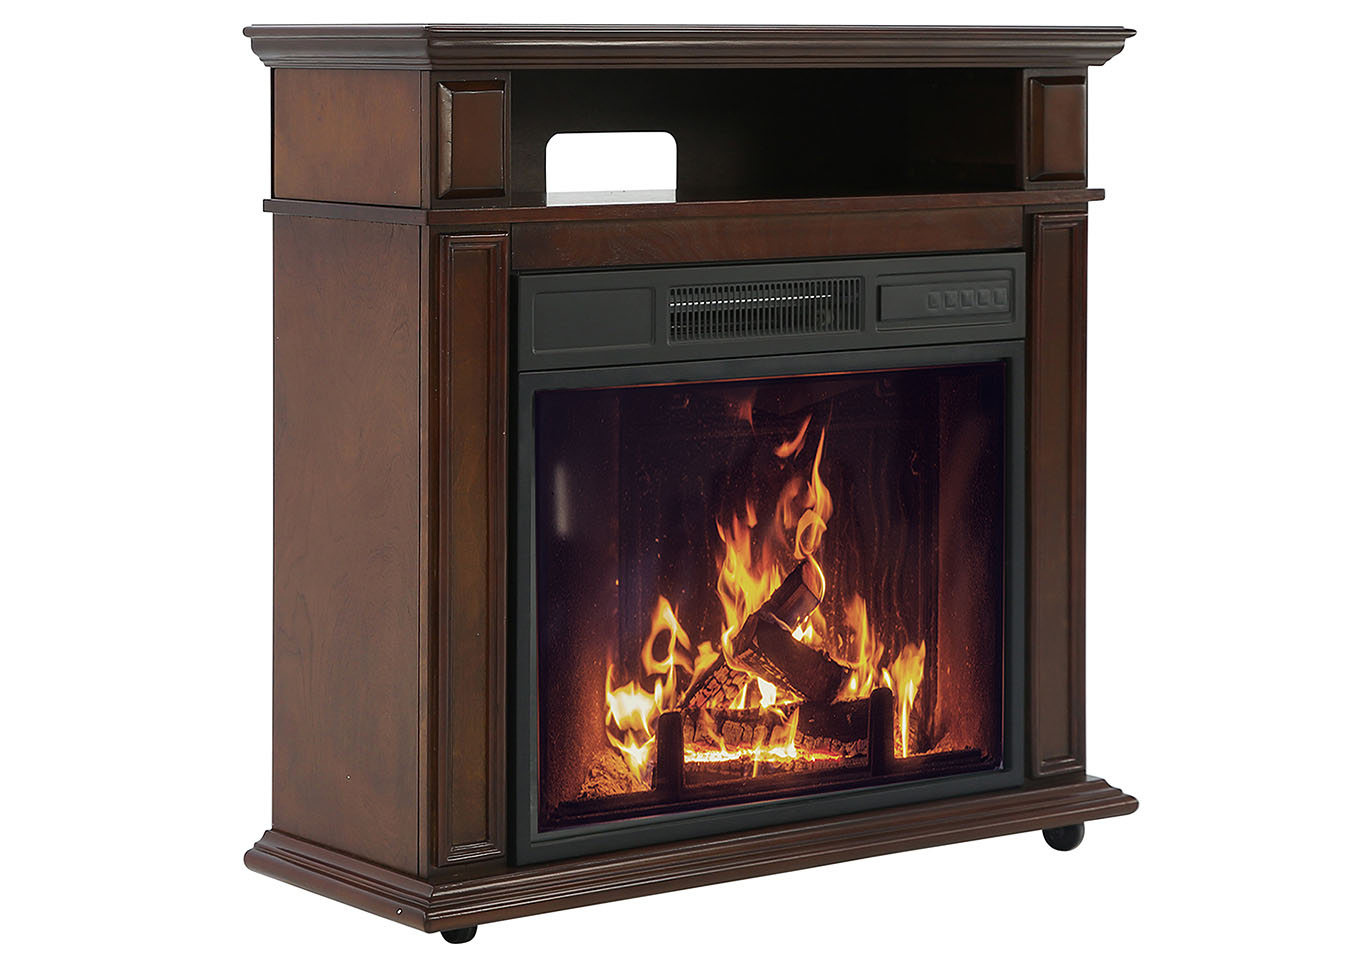 SOUTHGATE INFRARED ROLLING MANTEL,TWIN-STAR INTERNATIONAL